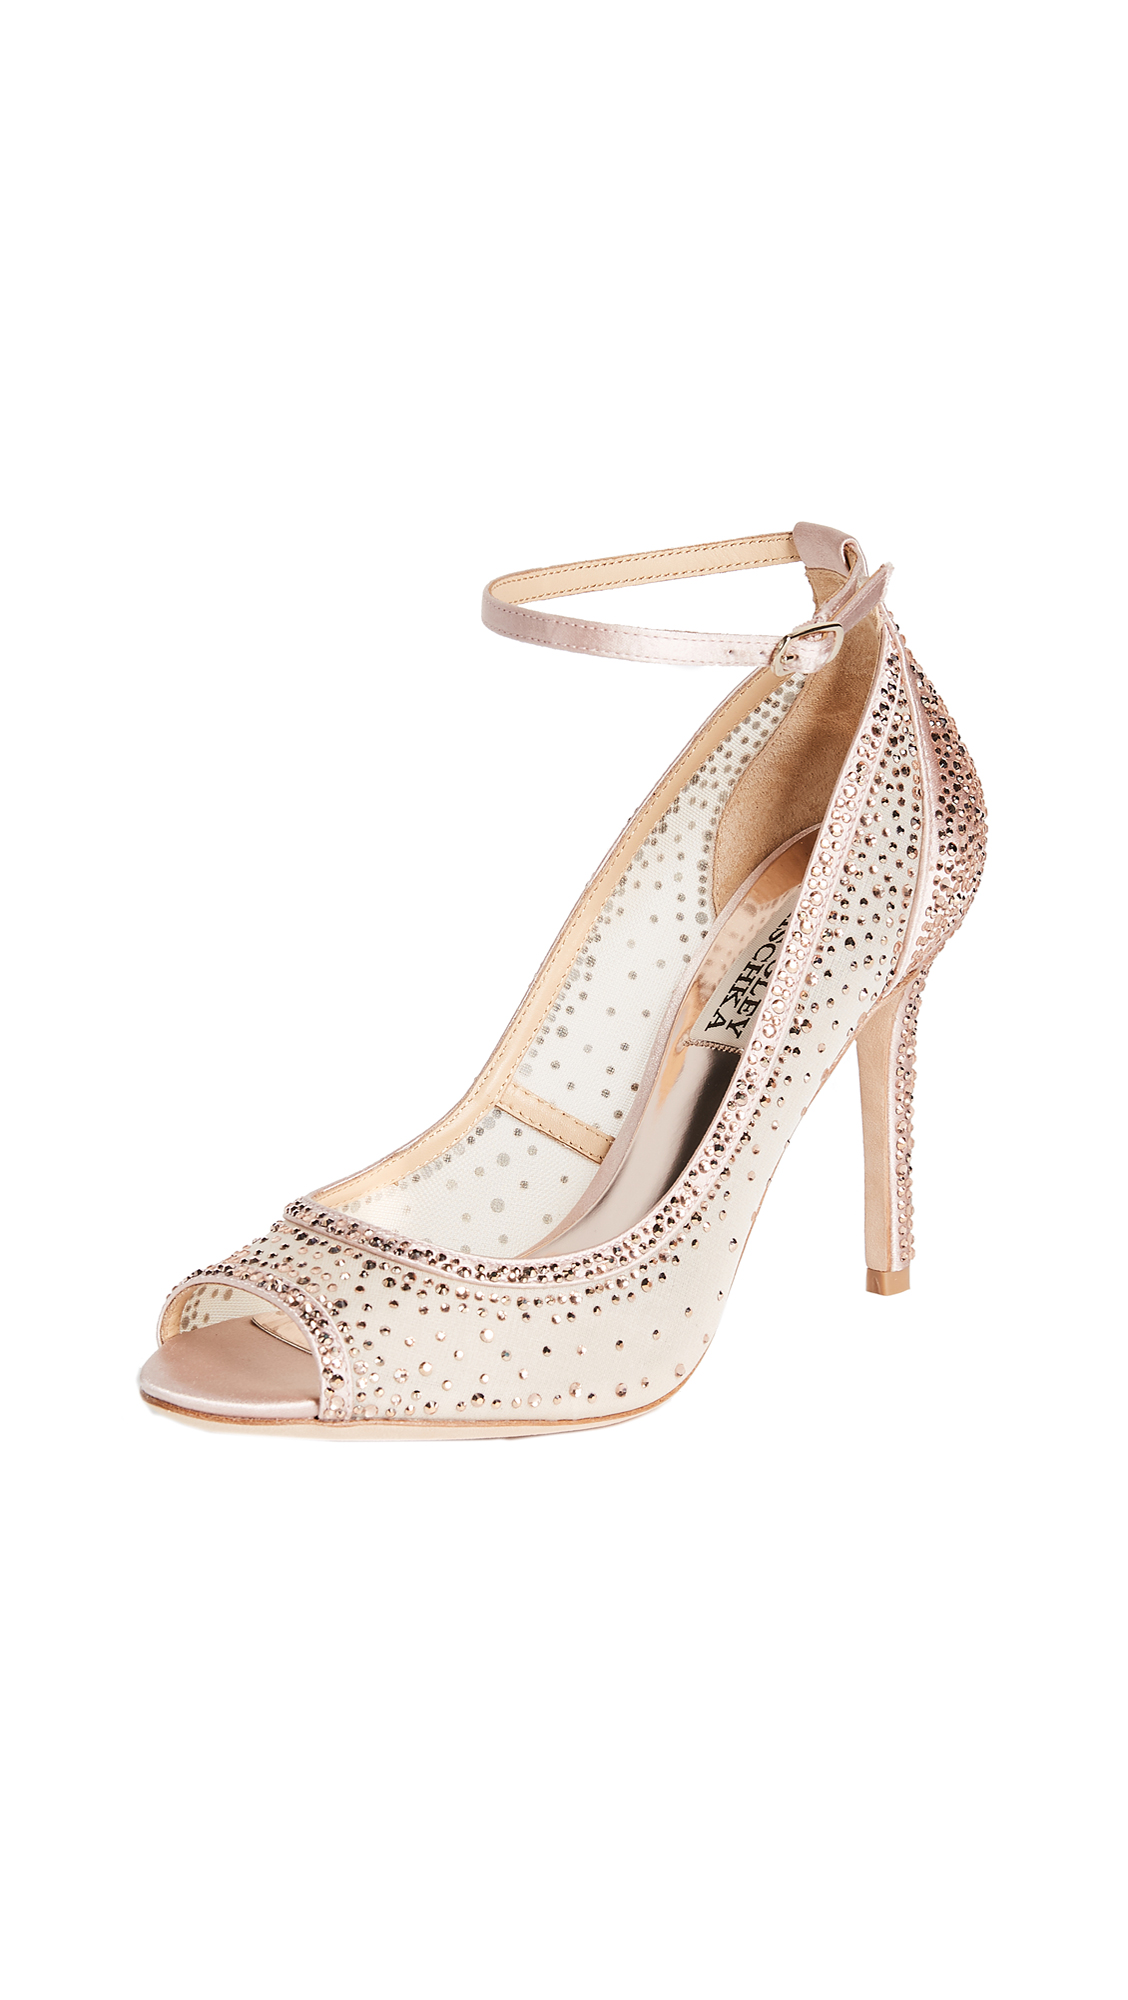 Badgley Mischka Weylin Open Toe Pumps - Blush